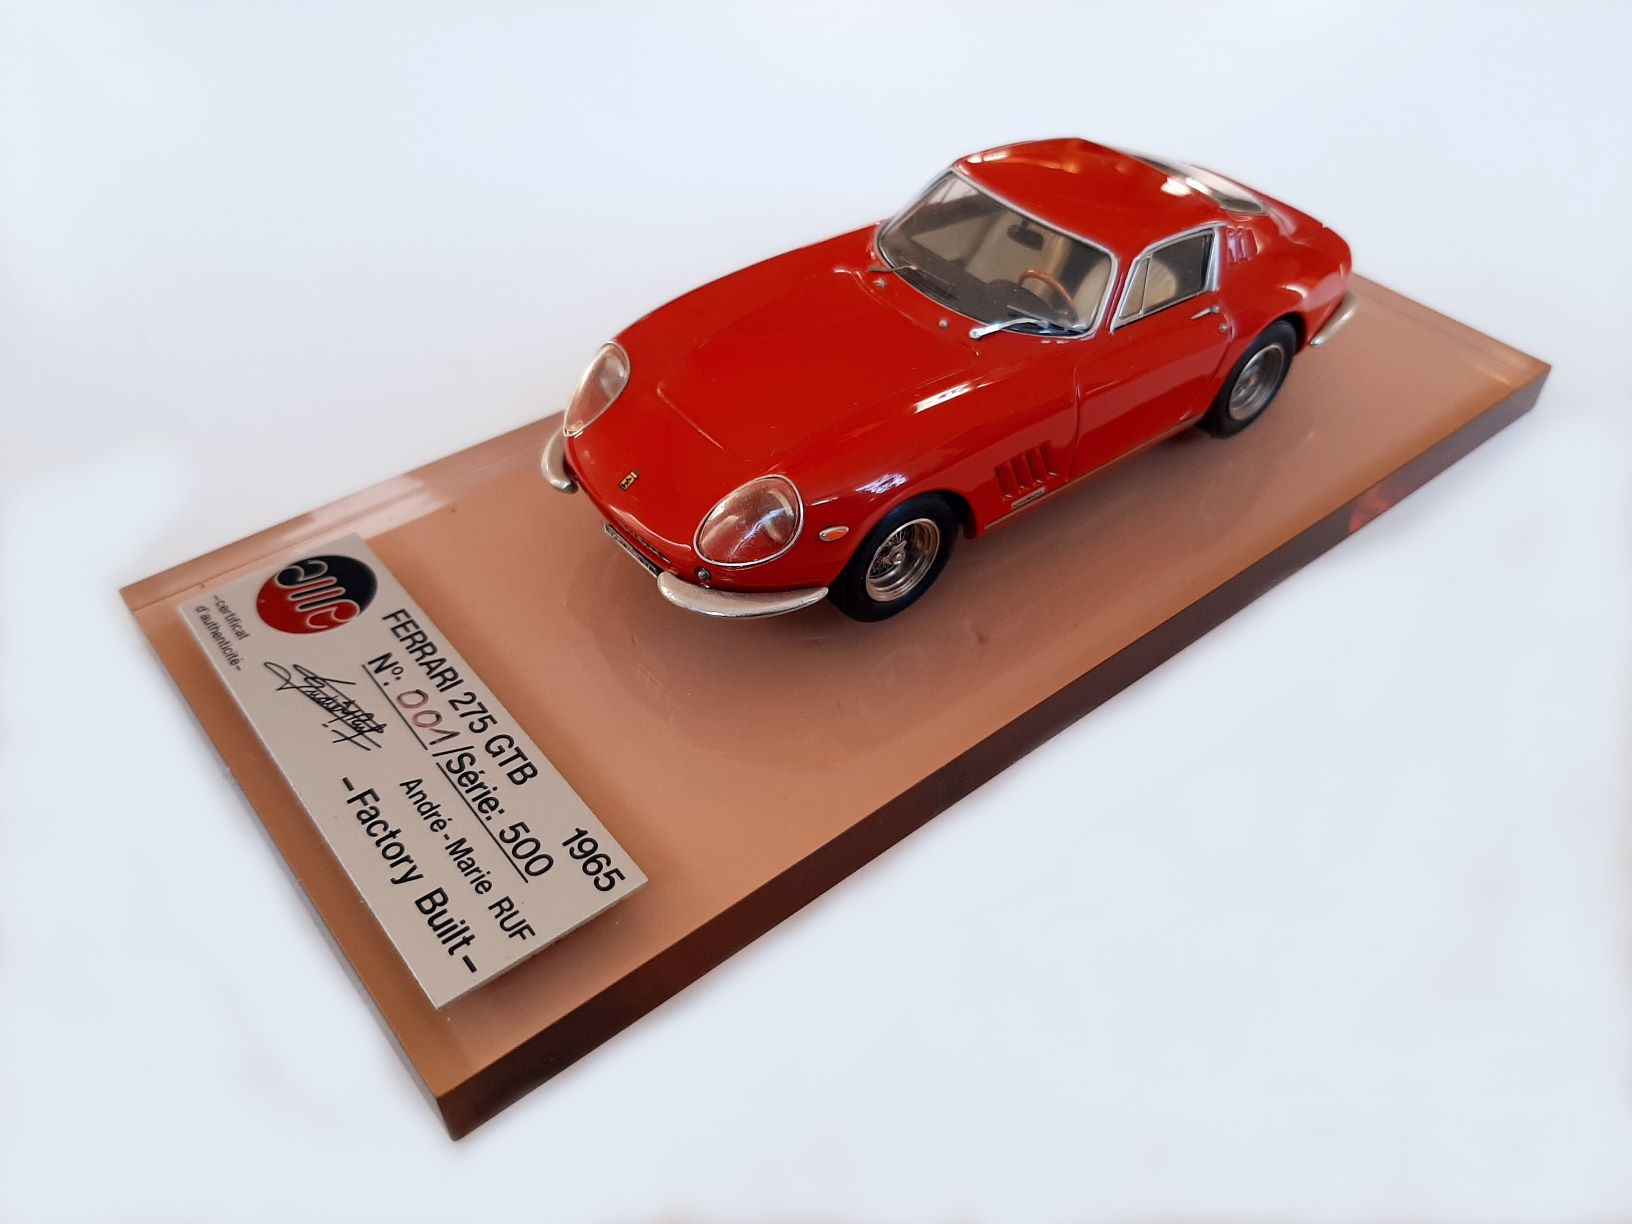 AM Ruf : Ferrari 275 GTB numbered 001 --> RESERVED